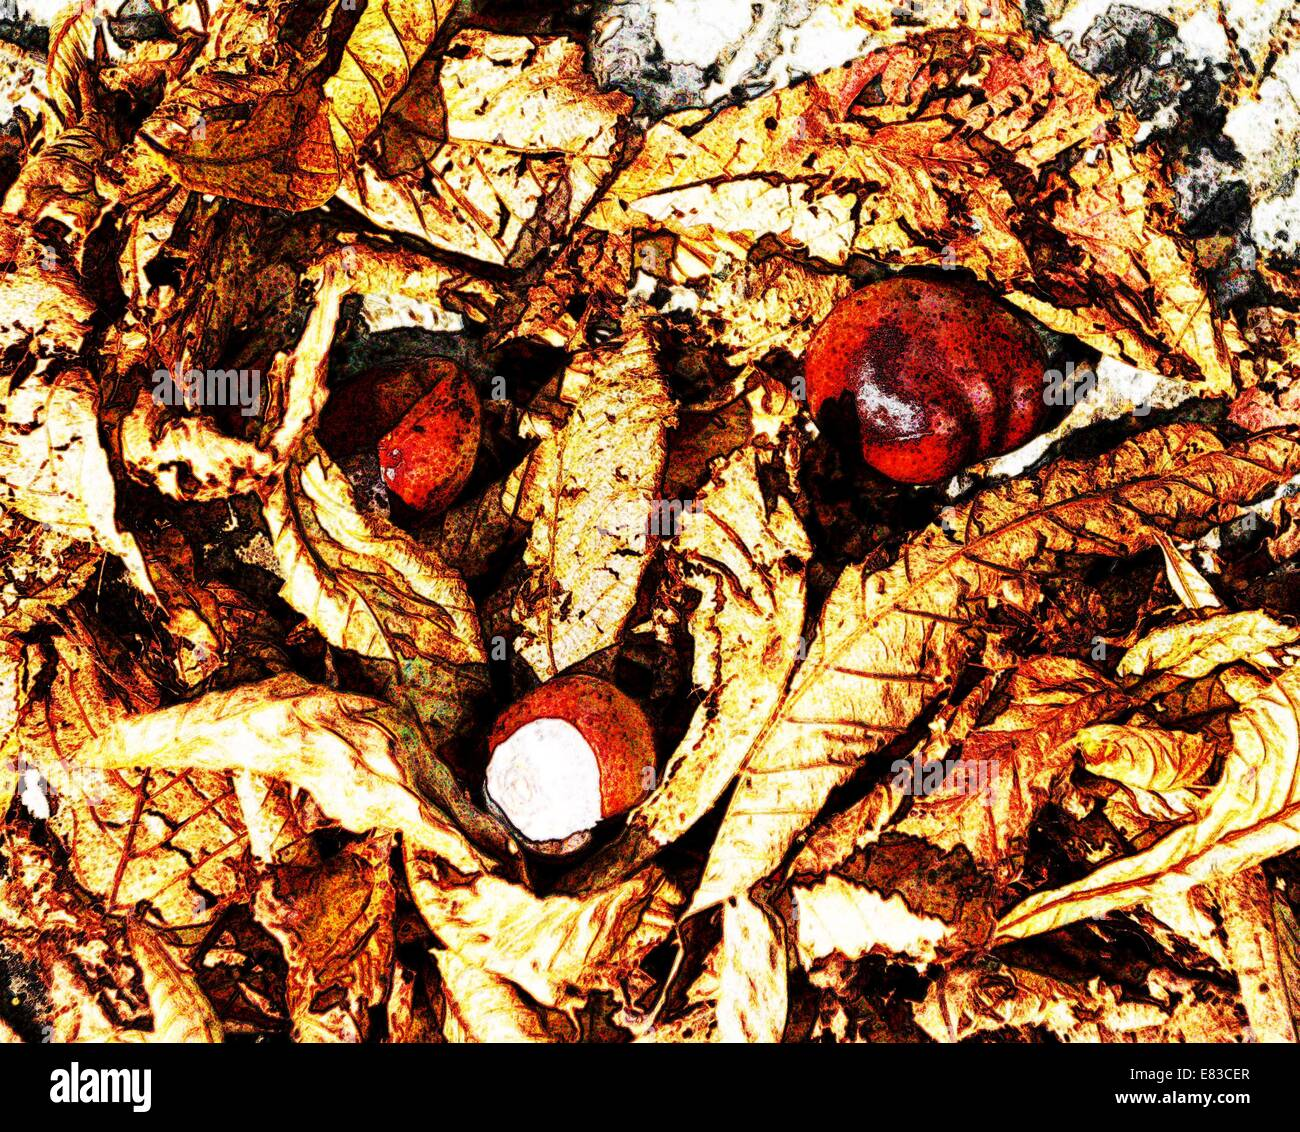 Conkers and Horse Chestnut tree leaves on the ground in Autumn - Stock Image